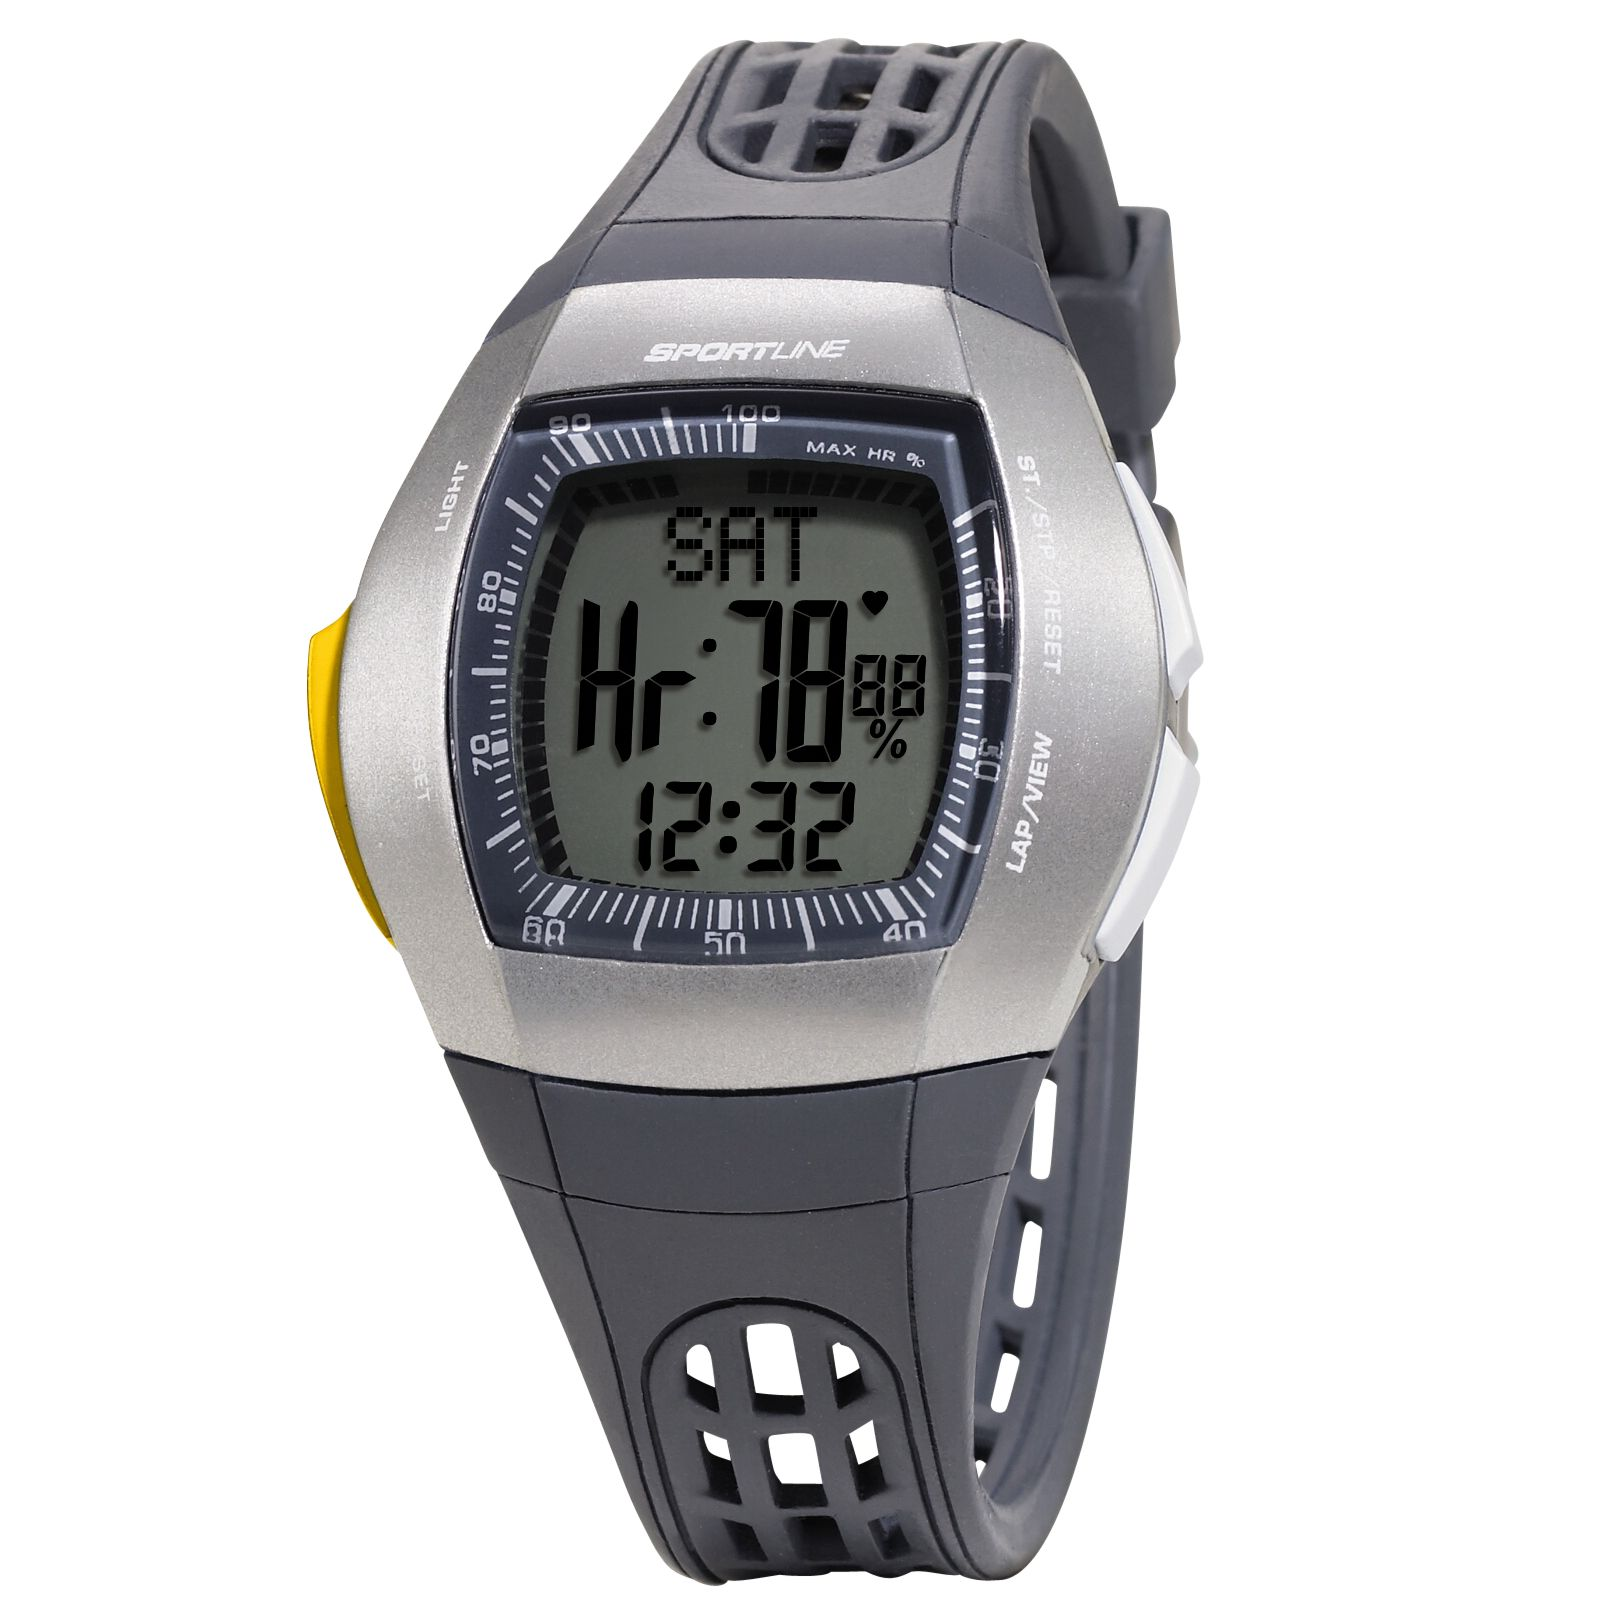 Sportline Sportline 1025 Duo Heart Rate Womens